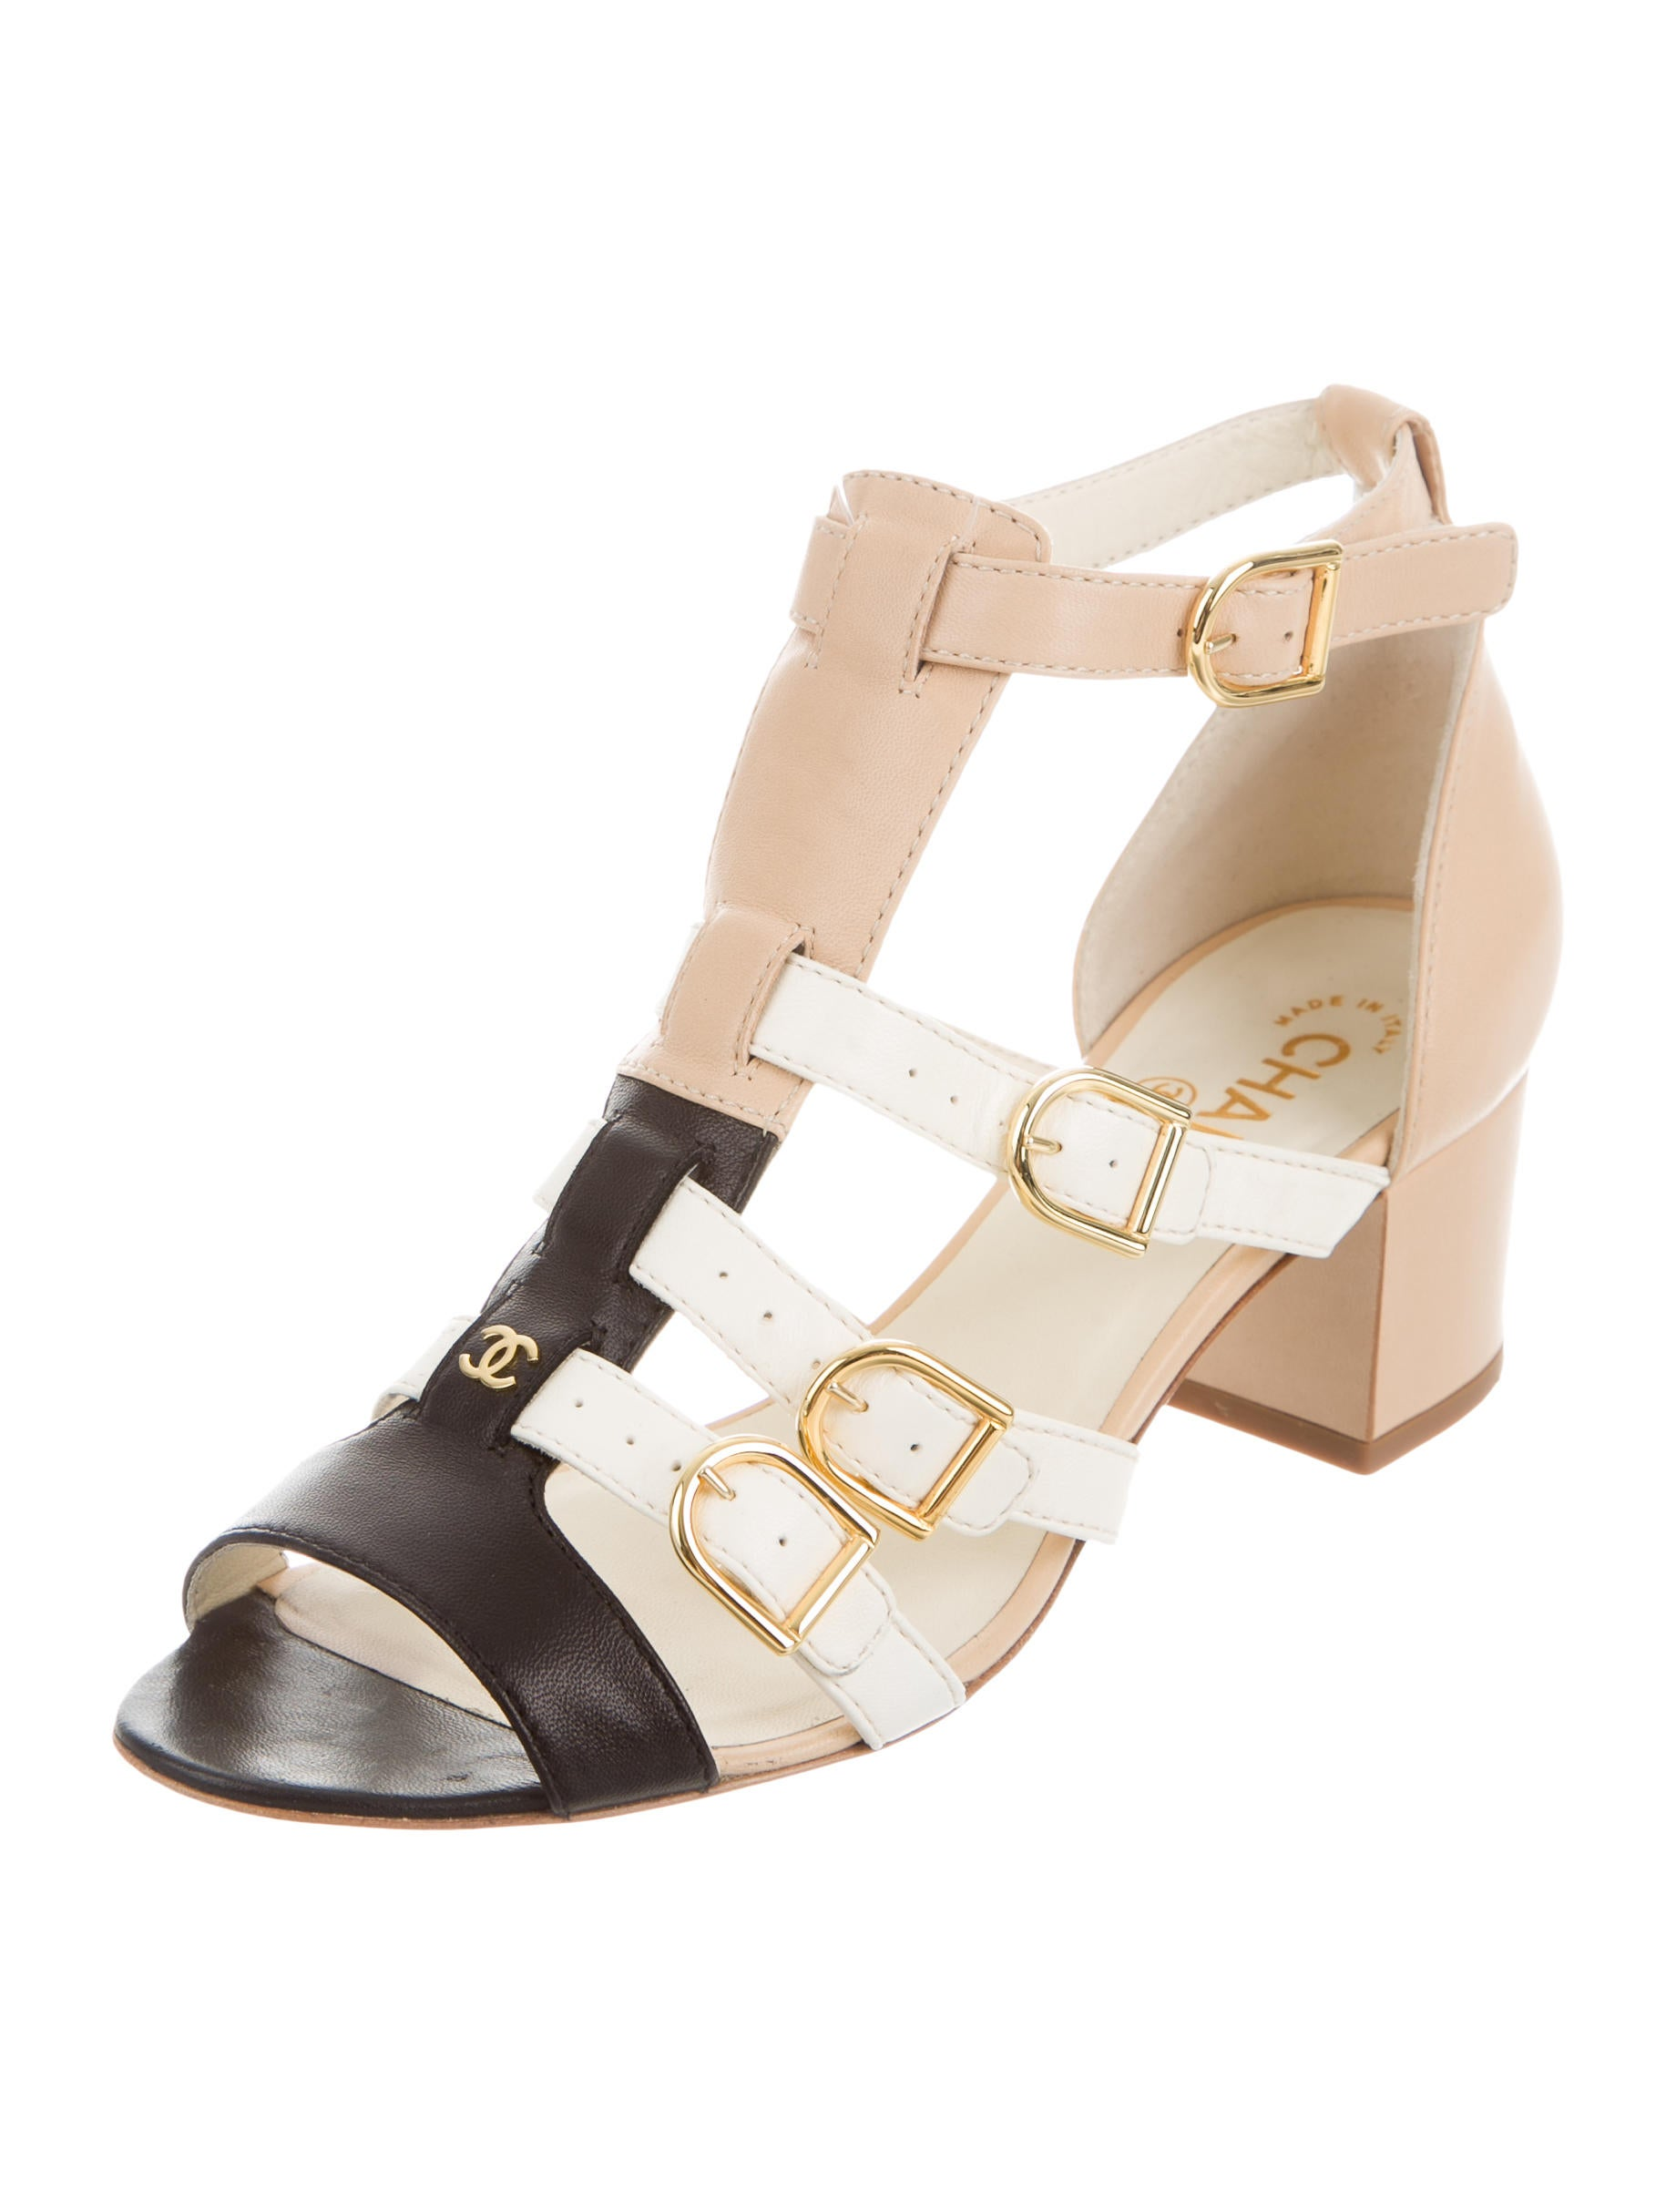 Perfect Chanel Sandals  Shoes  CHA59092  The RealReal